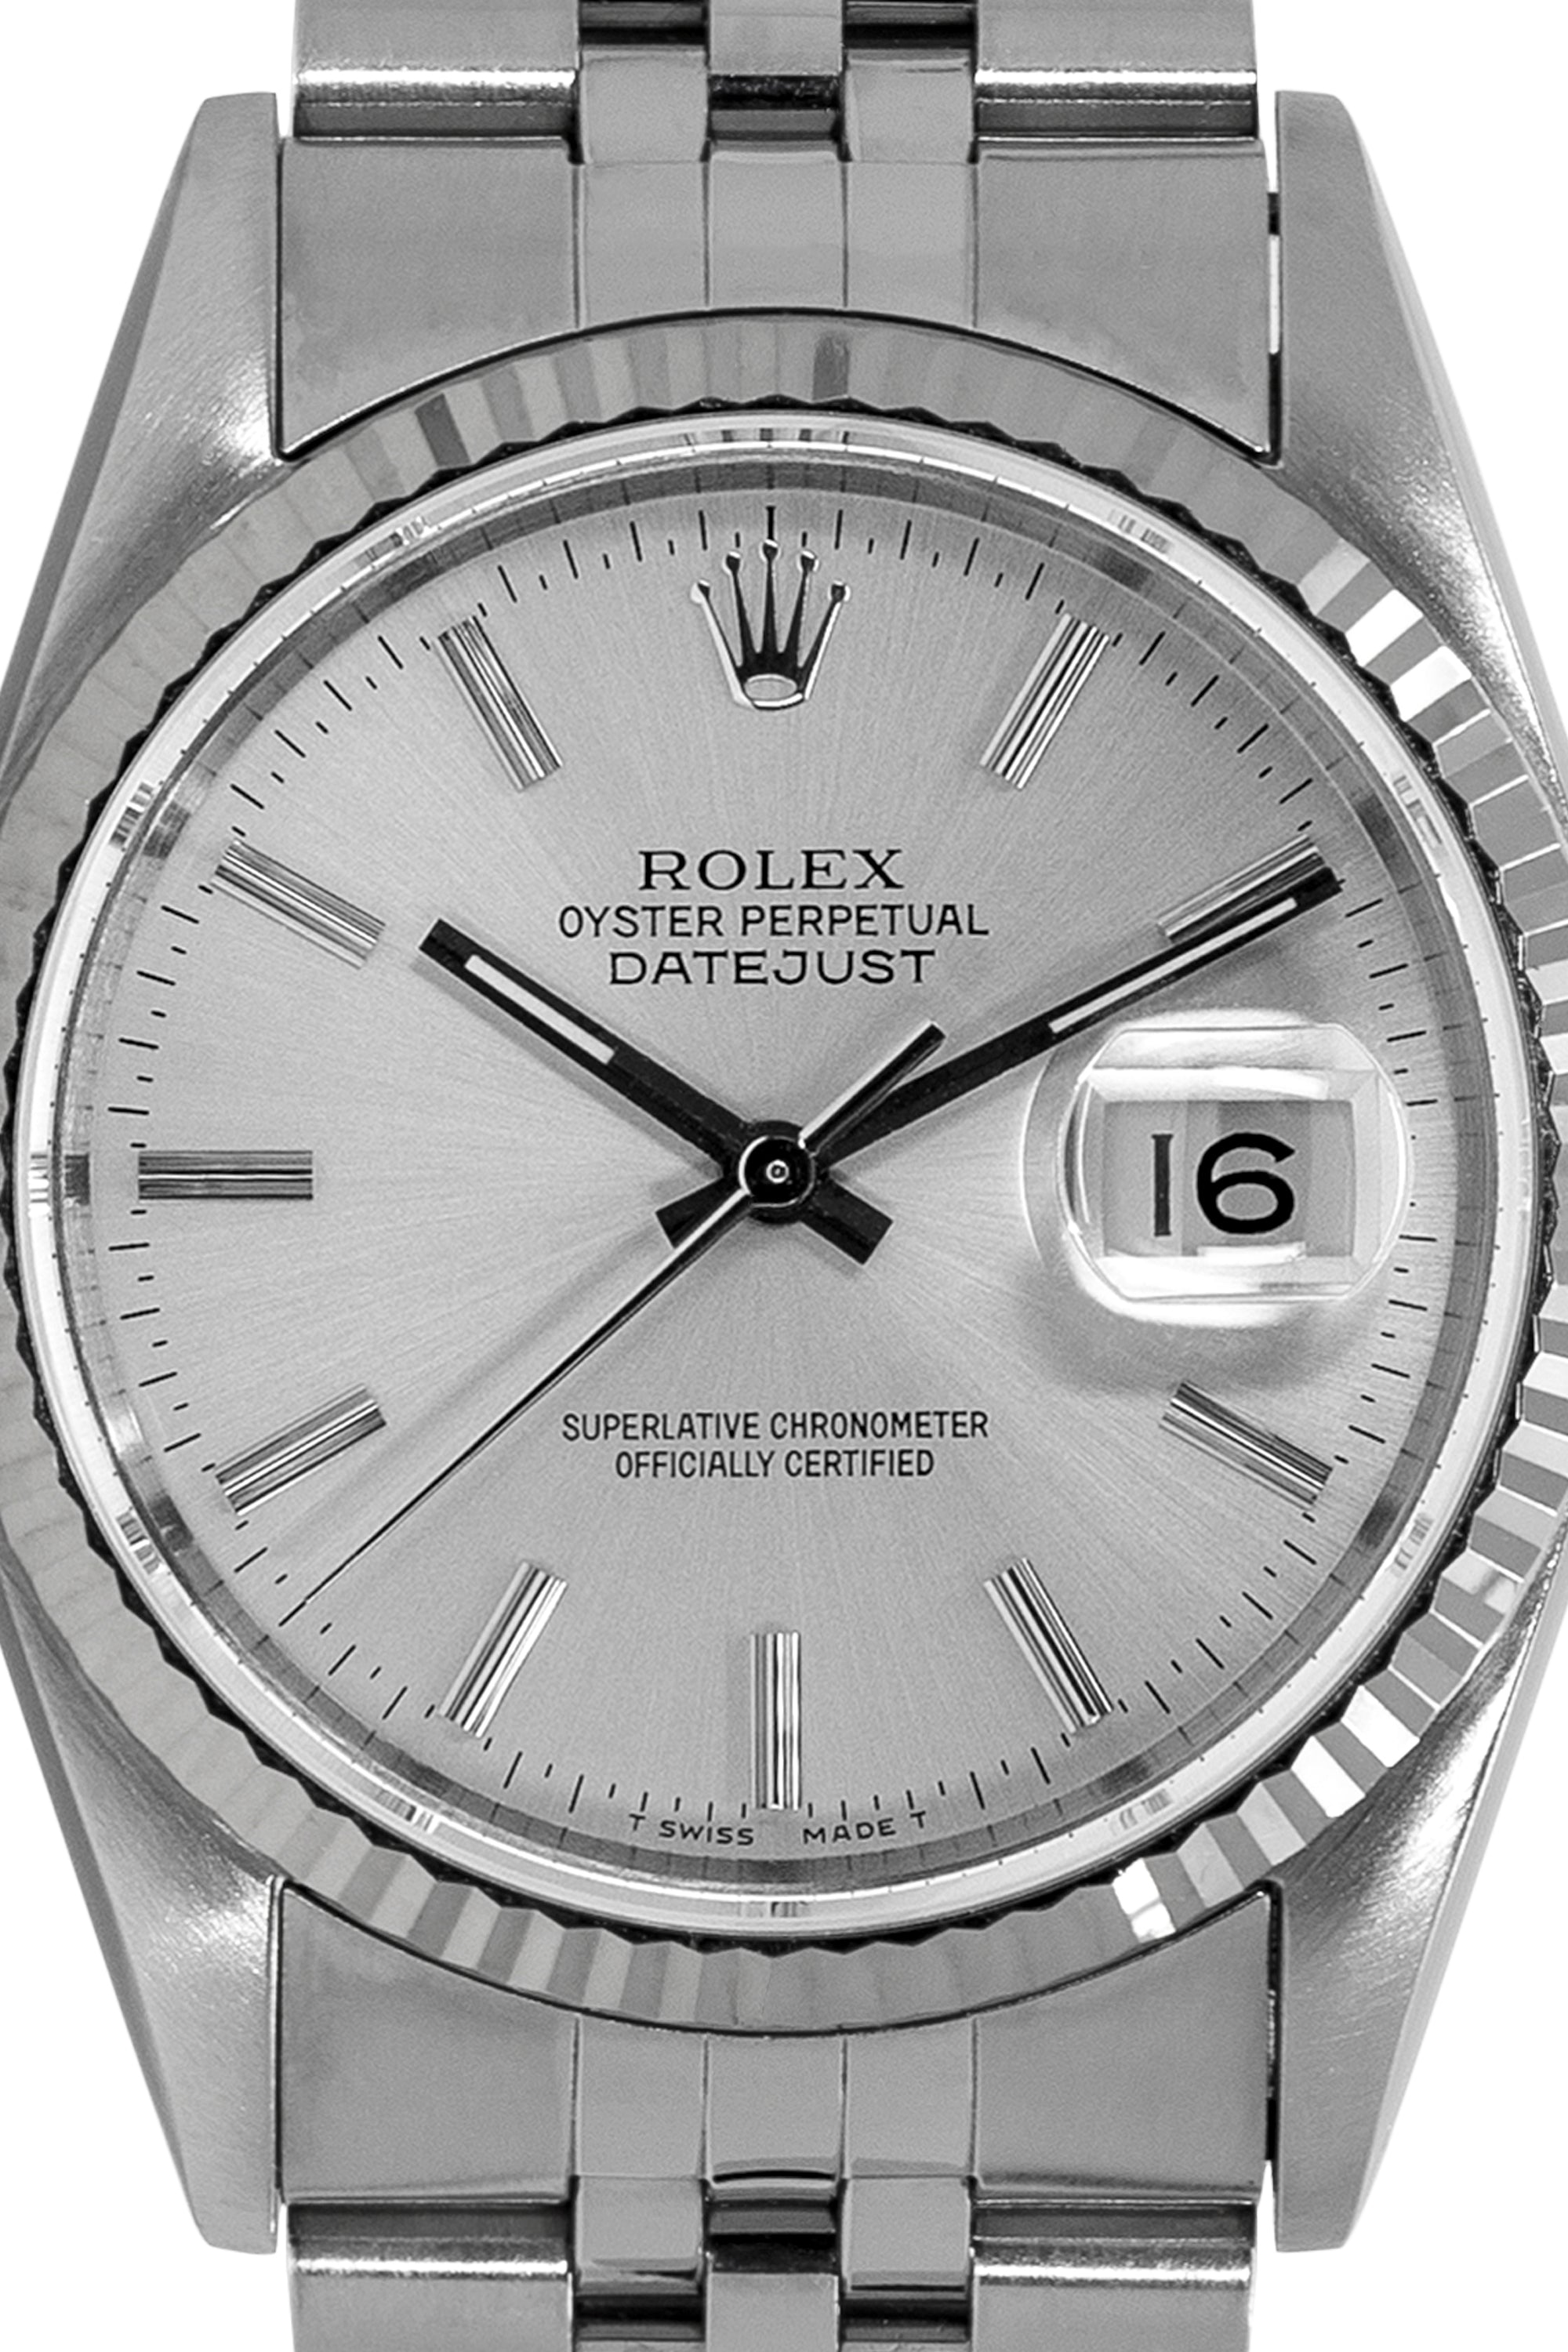 0b8102931e8f3 ROLEX Datejust 16234 Stainless Steel Watch – Silver Dial ...